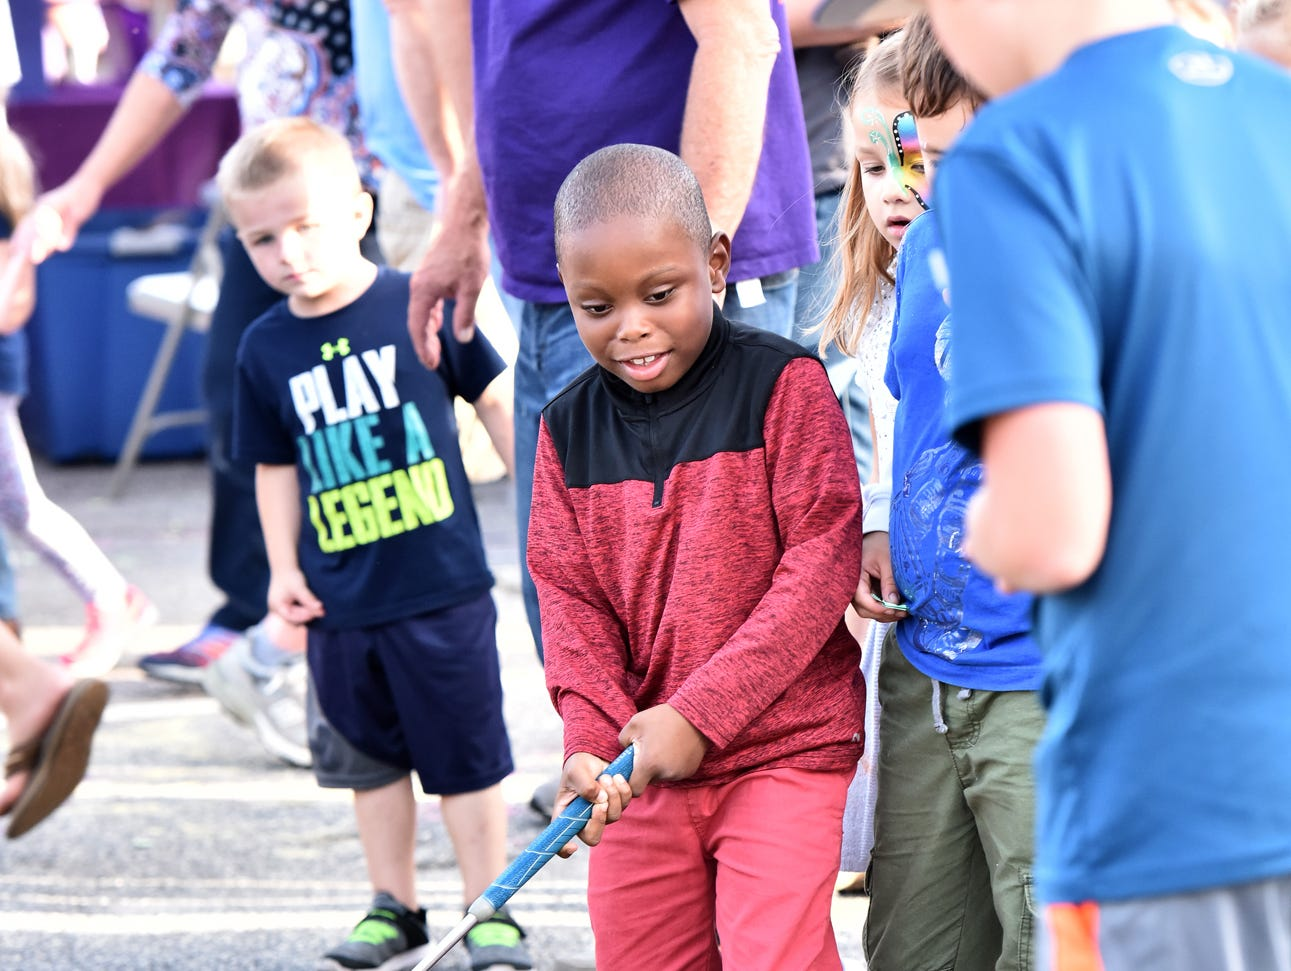 Bethel Elementary School held its annual Bethel Bash on Friday evening, October 12, 2018. Children played with Silly String, cracked confetti-filled eggs, rode on carnival rides and had their faces painted during the event.